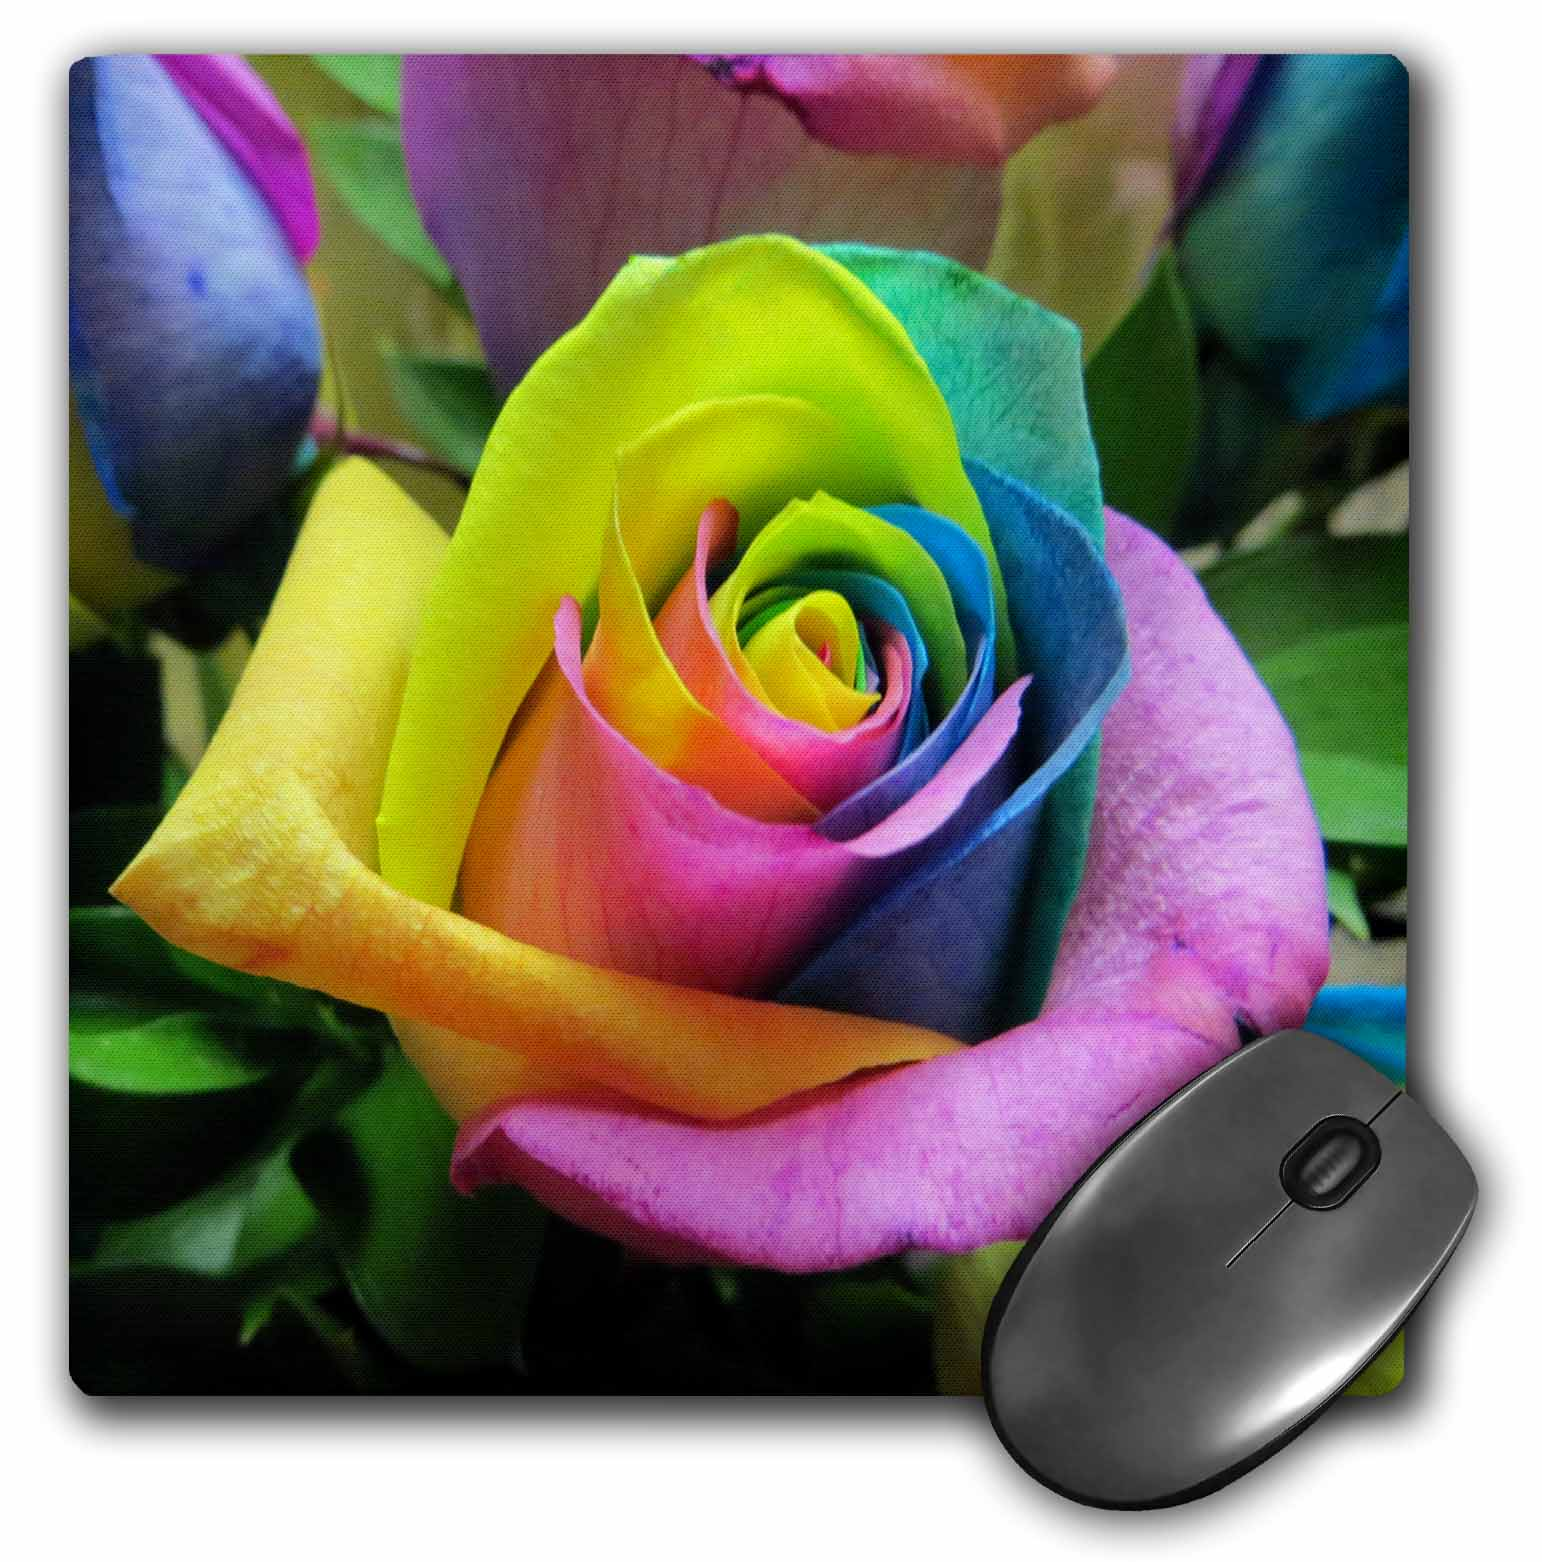 3dRose Tye Dye Roses, Mouse Pad, 8 by 8 inches